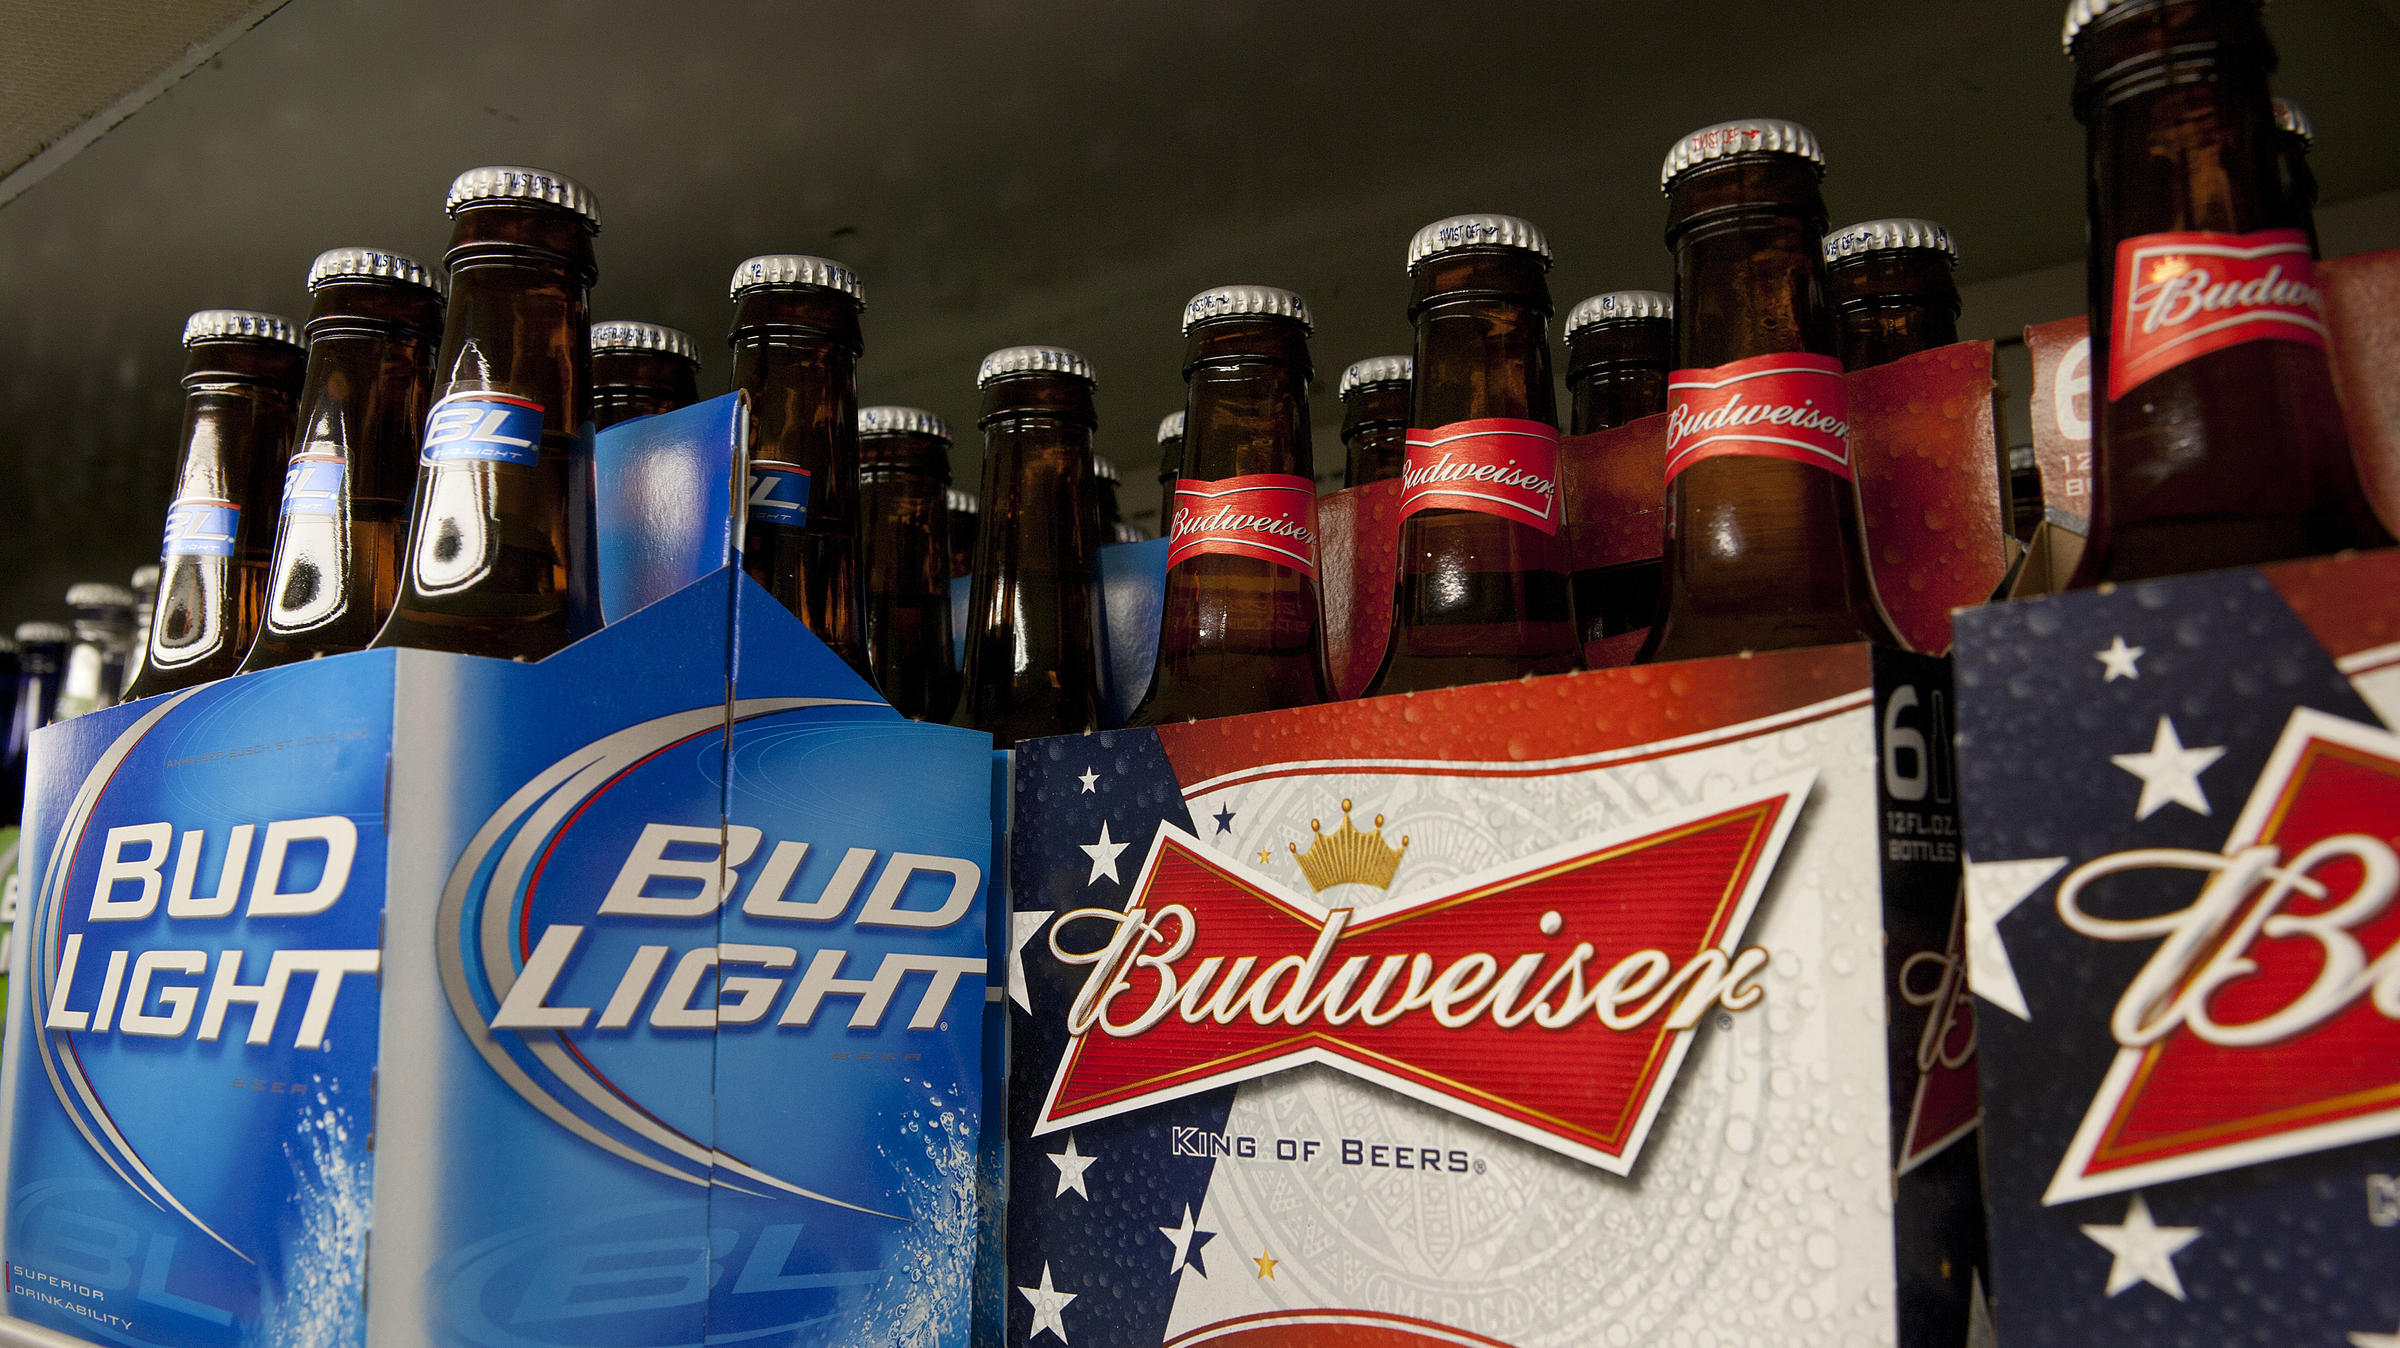 Plaintiffs Accuse Anheuser Busch Of Misleading Consumers About The Alcohol  Content In Bud Light, Budweiser And Other Products. The Brewer Denies The  Claims.